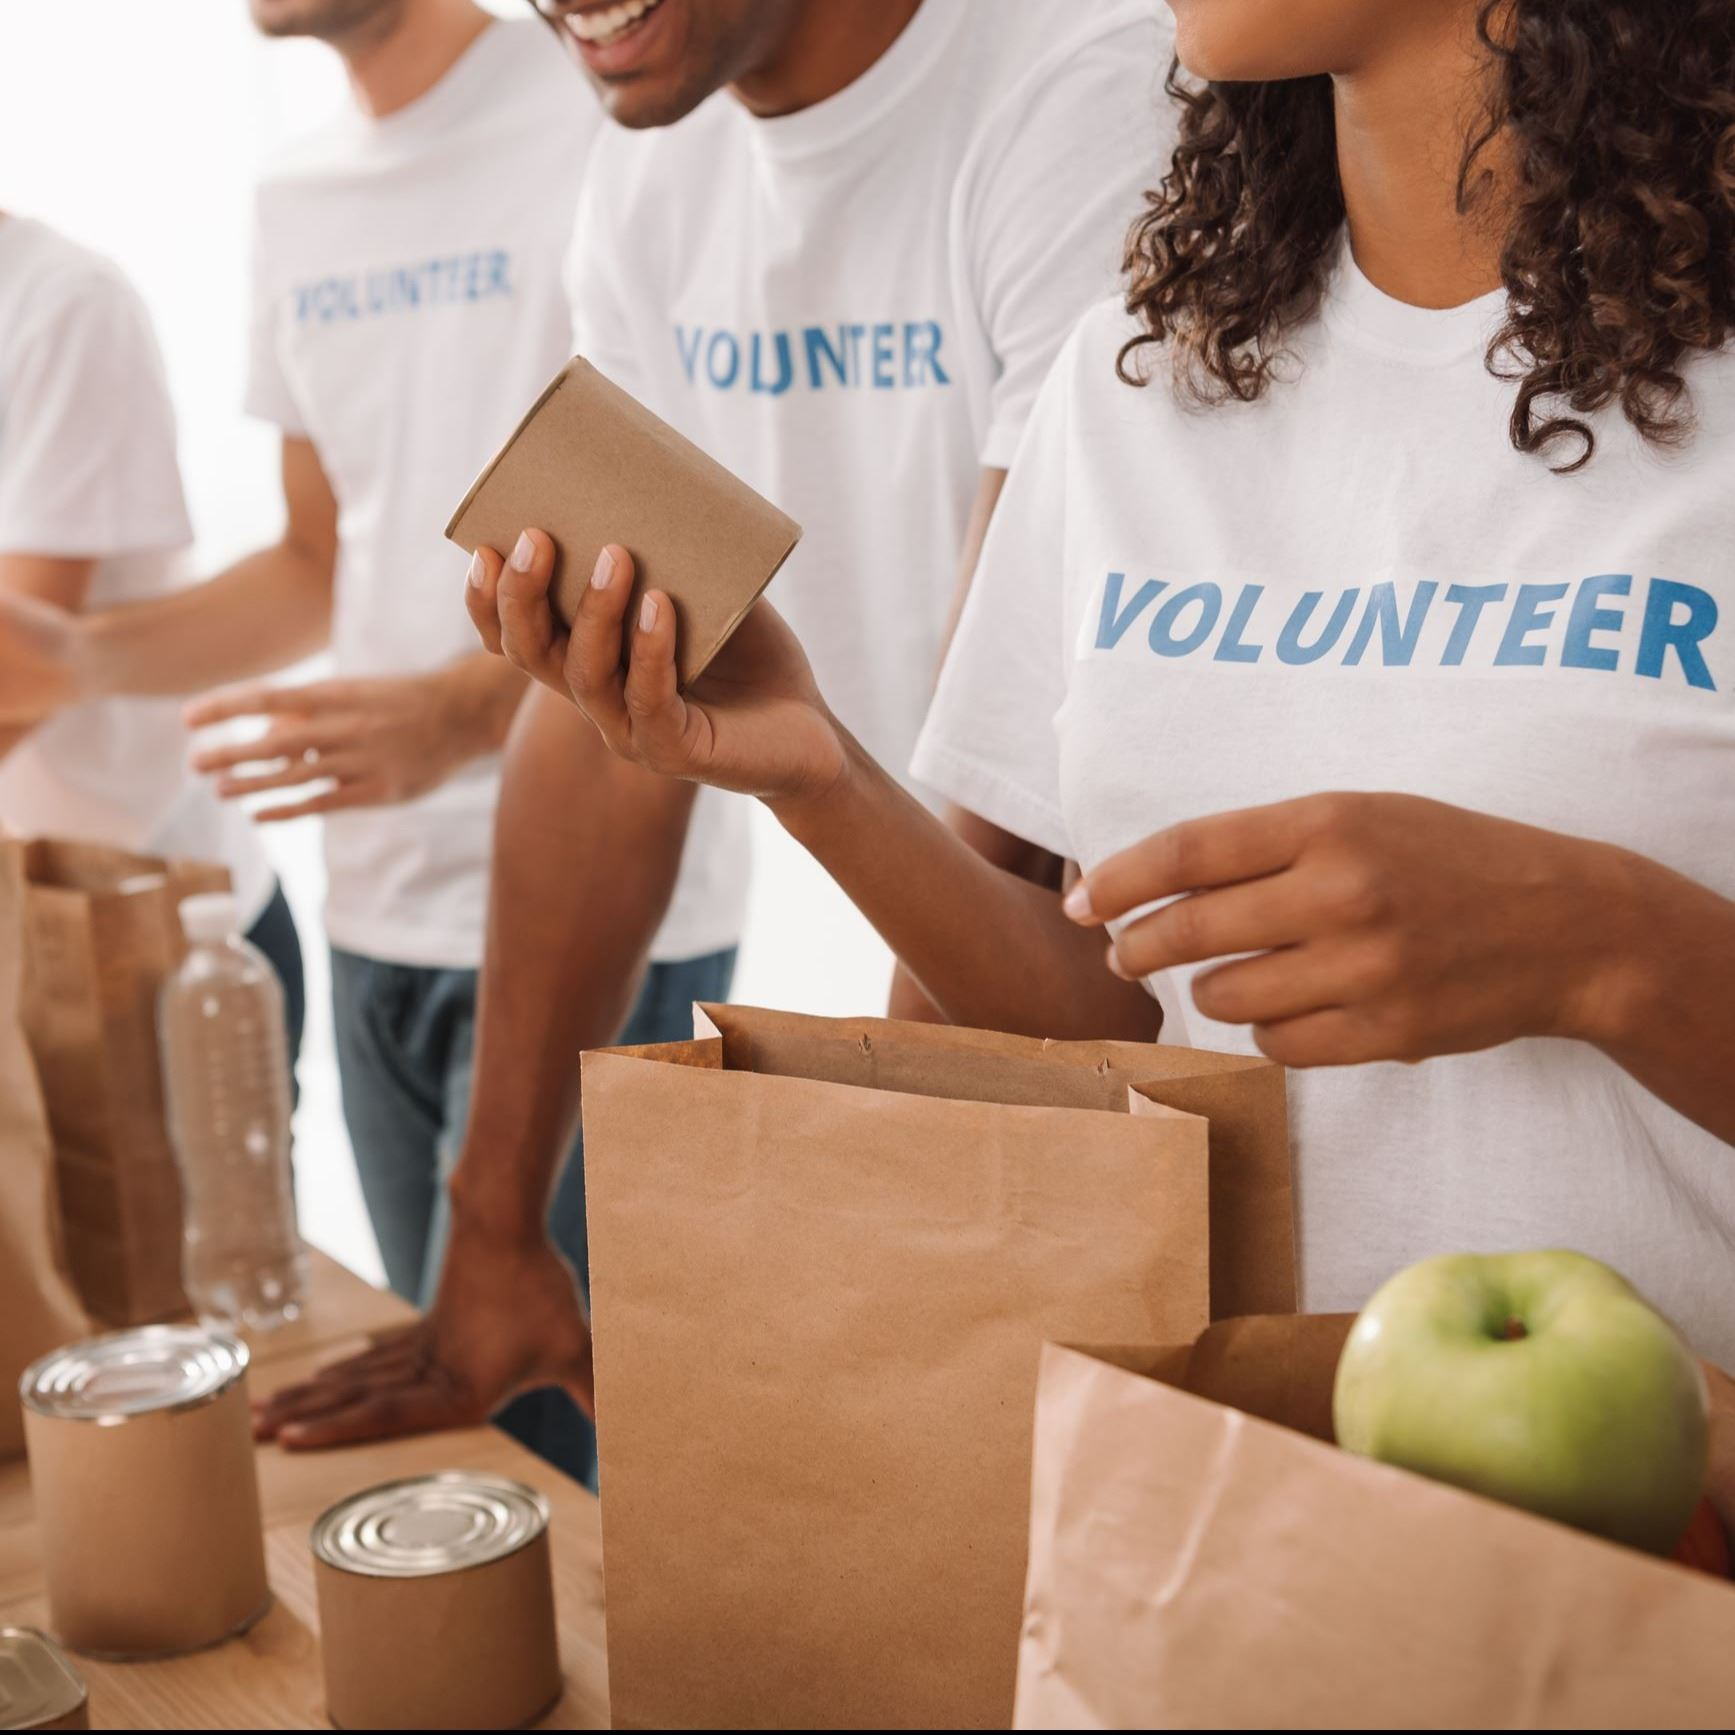 People volunteering to fill bags at a food shelf.